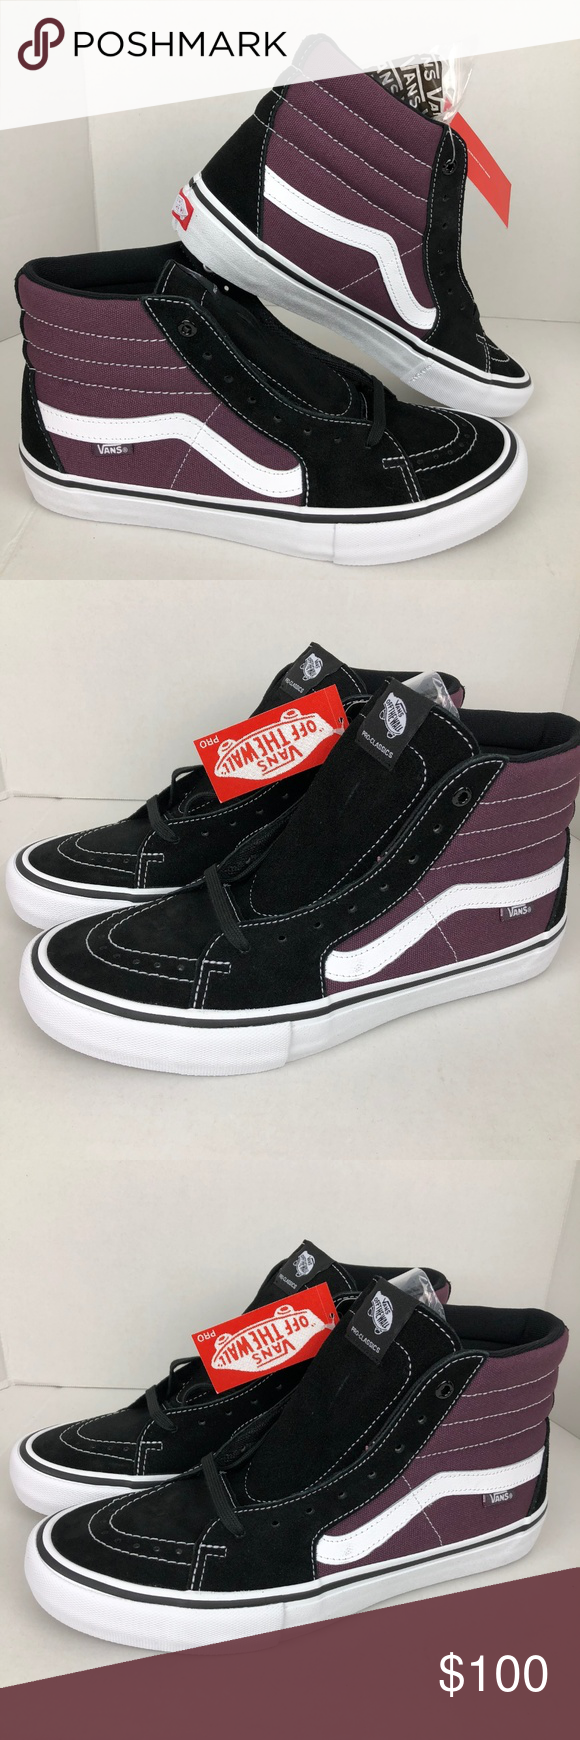 Vans Old Skool Trainers available from Blackleaf